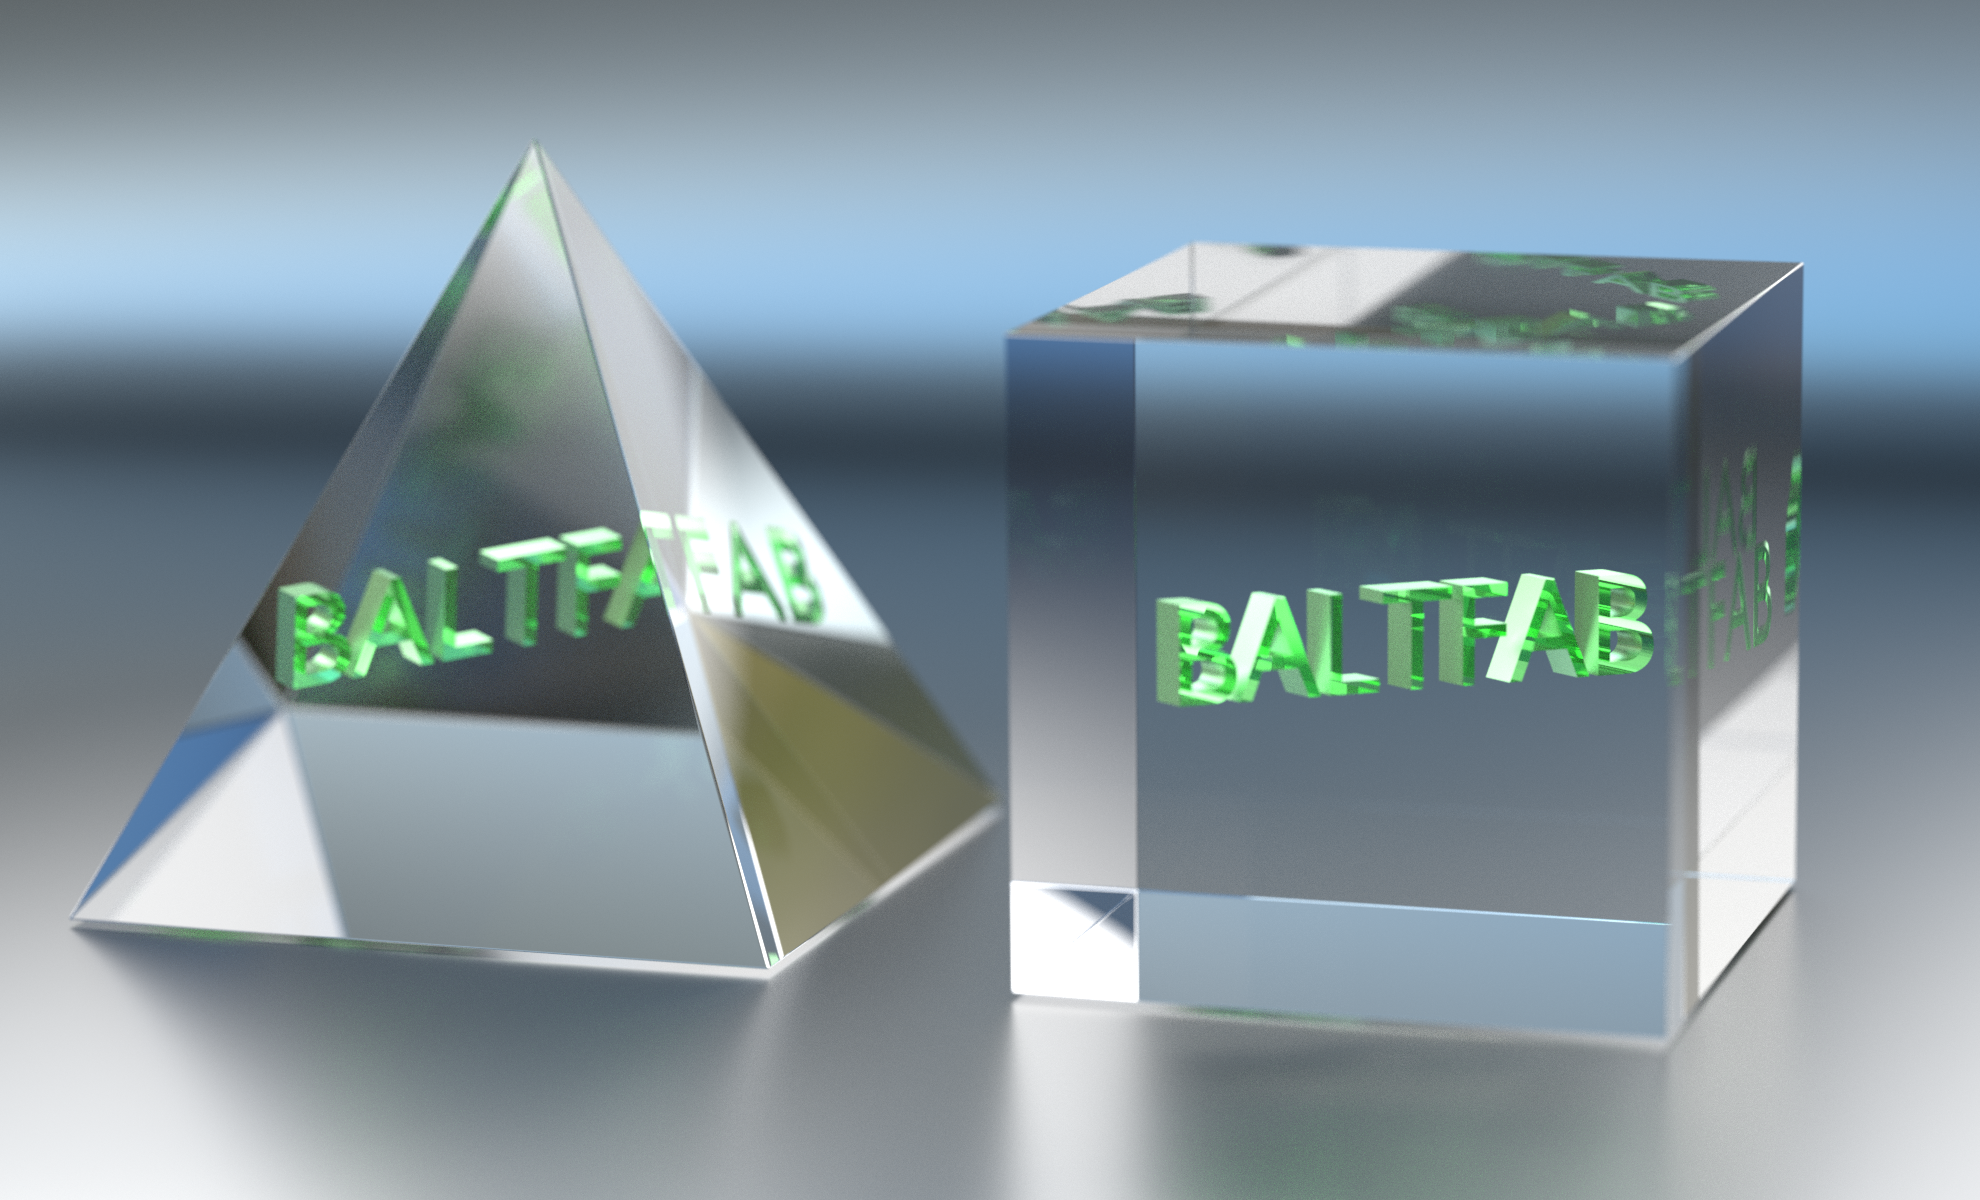 Baltfab in glass2